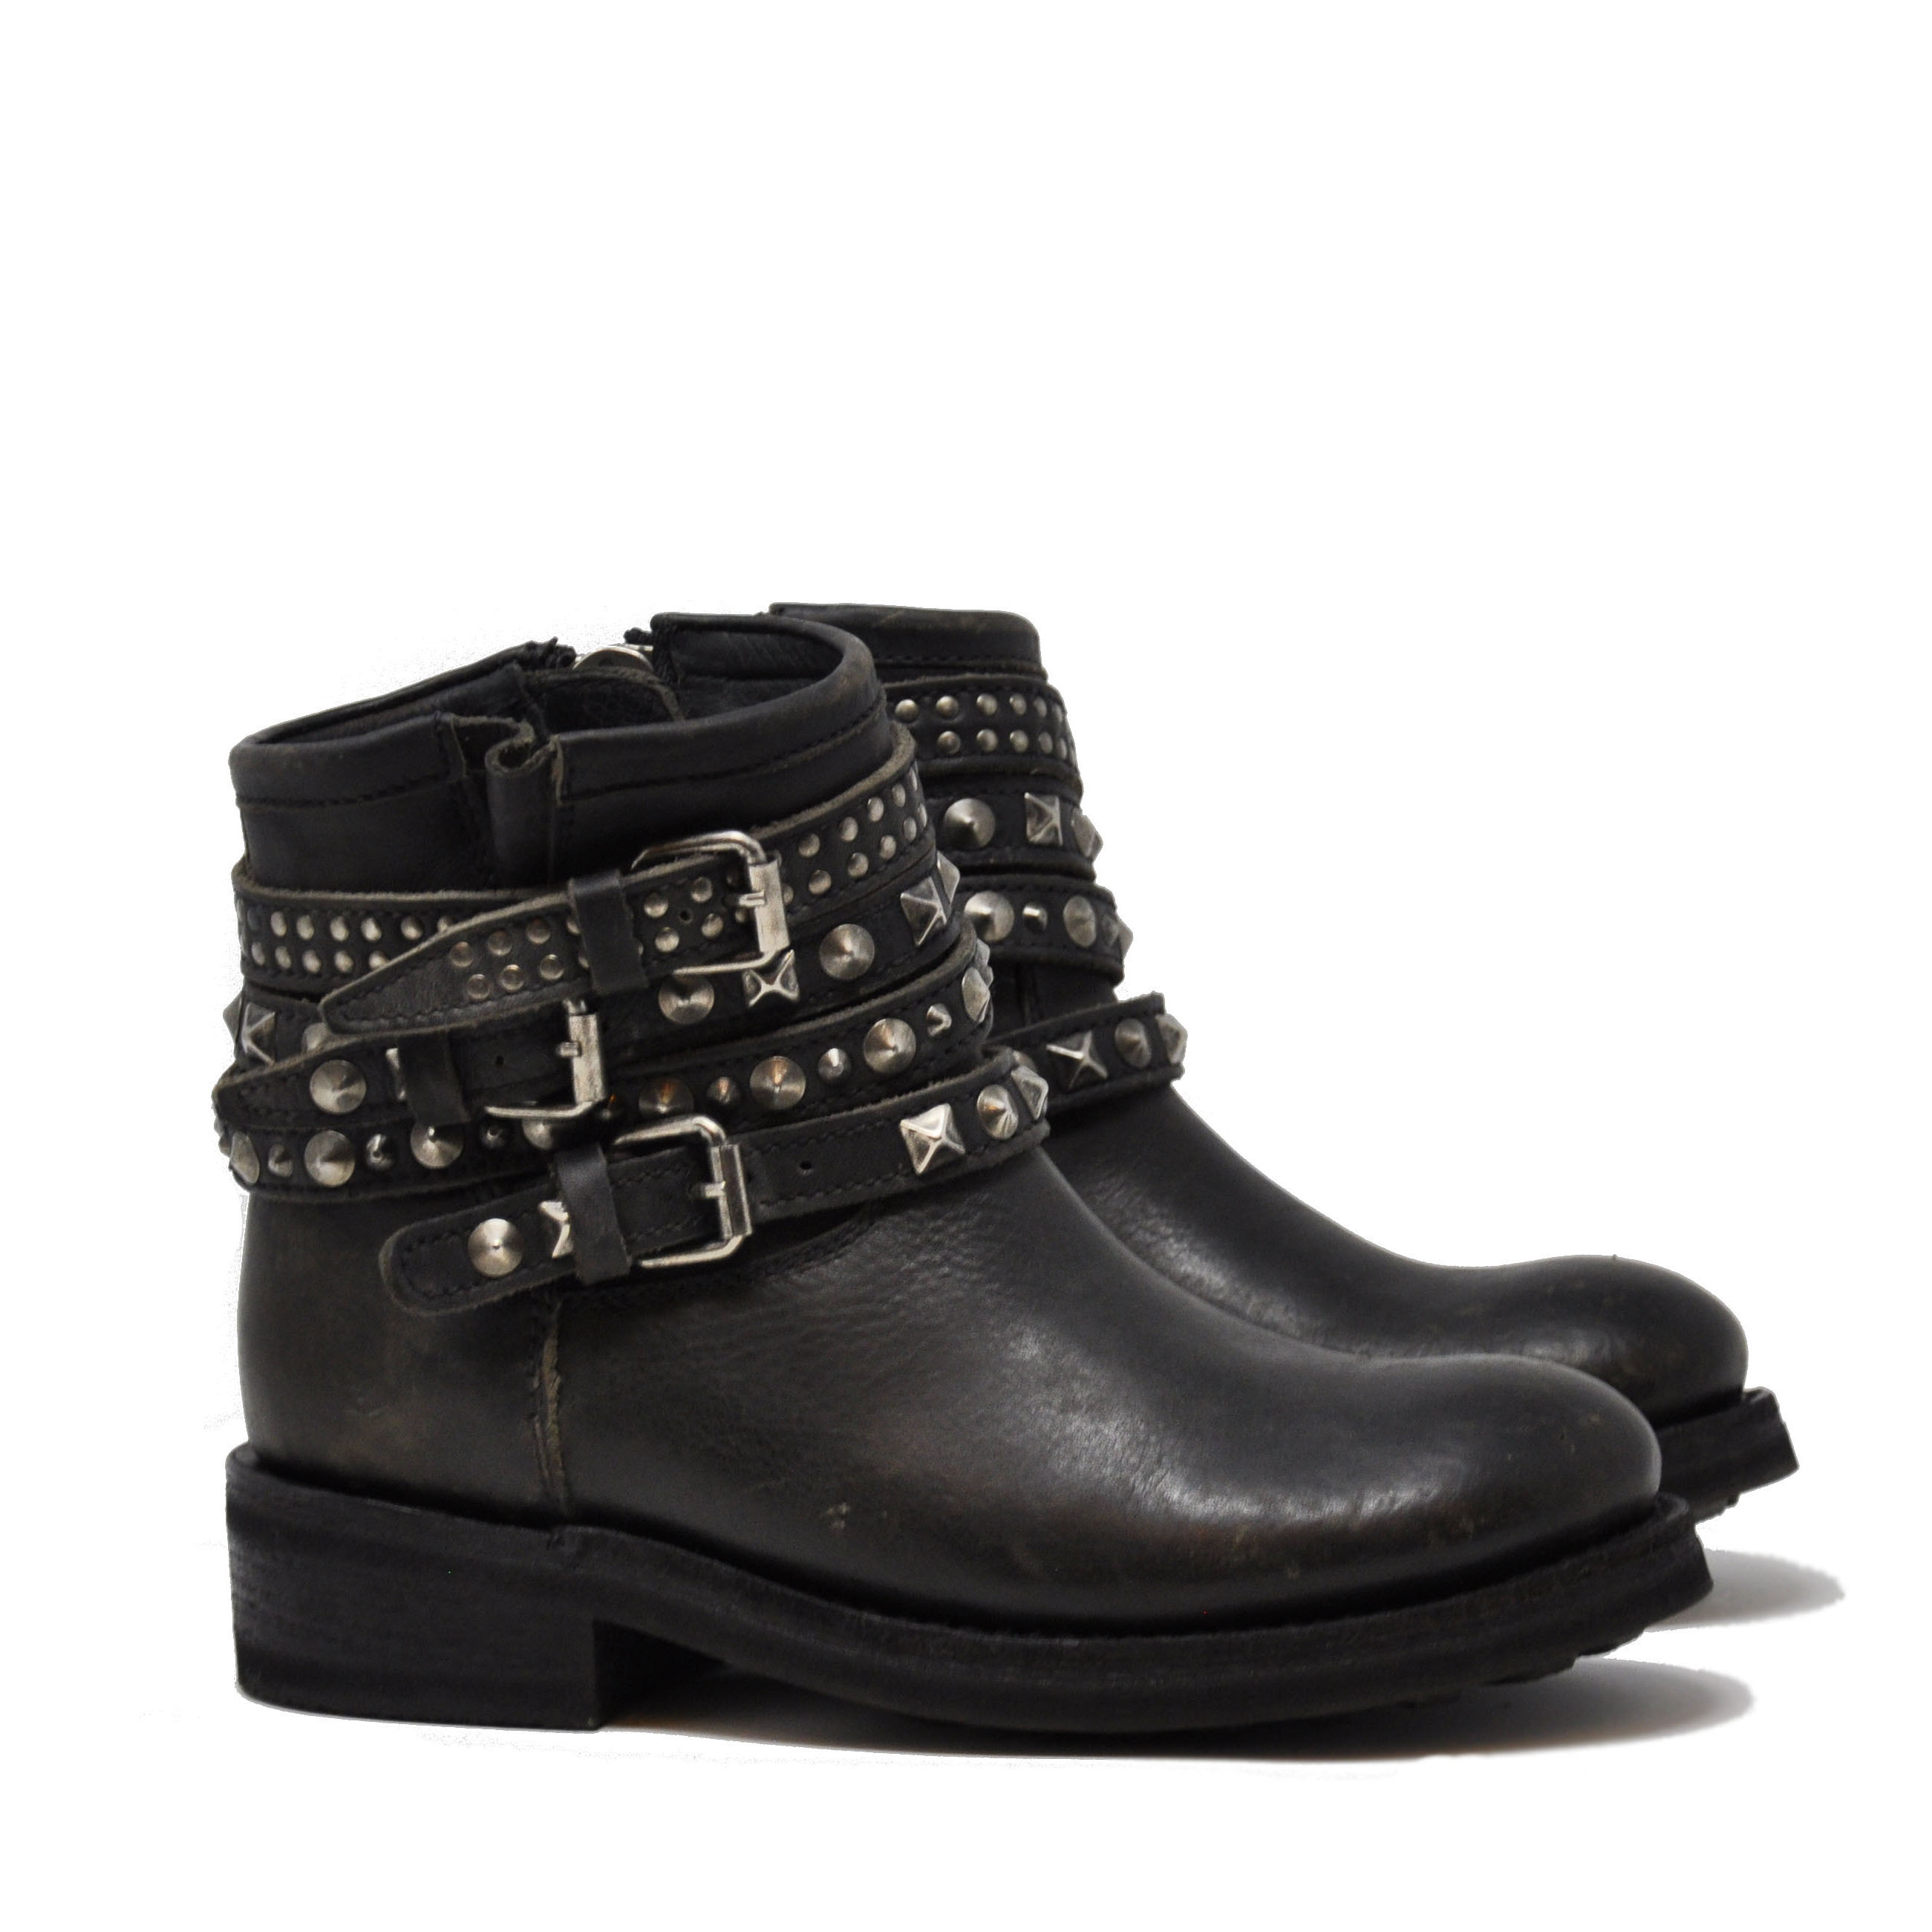 Biker TATUM destroyer - ASH Mexican boots-old nikel studs